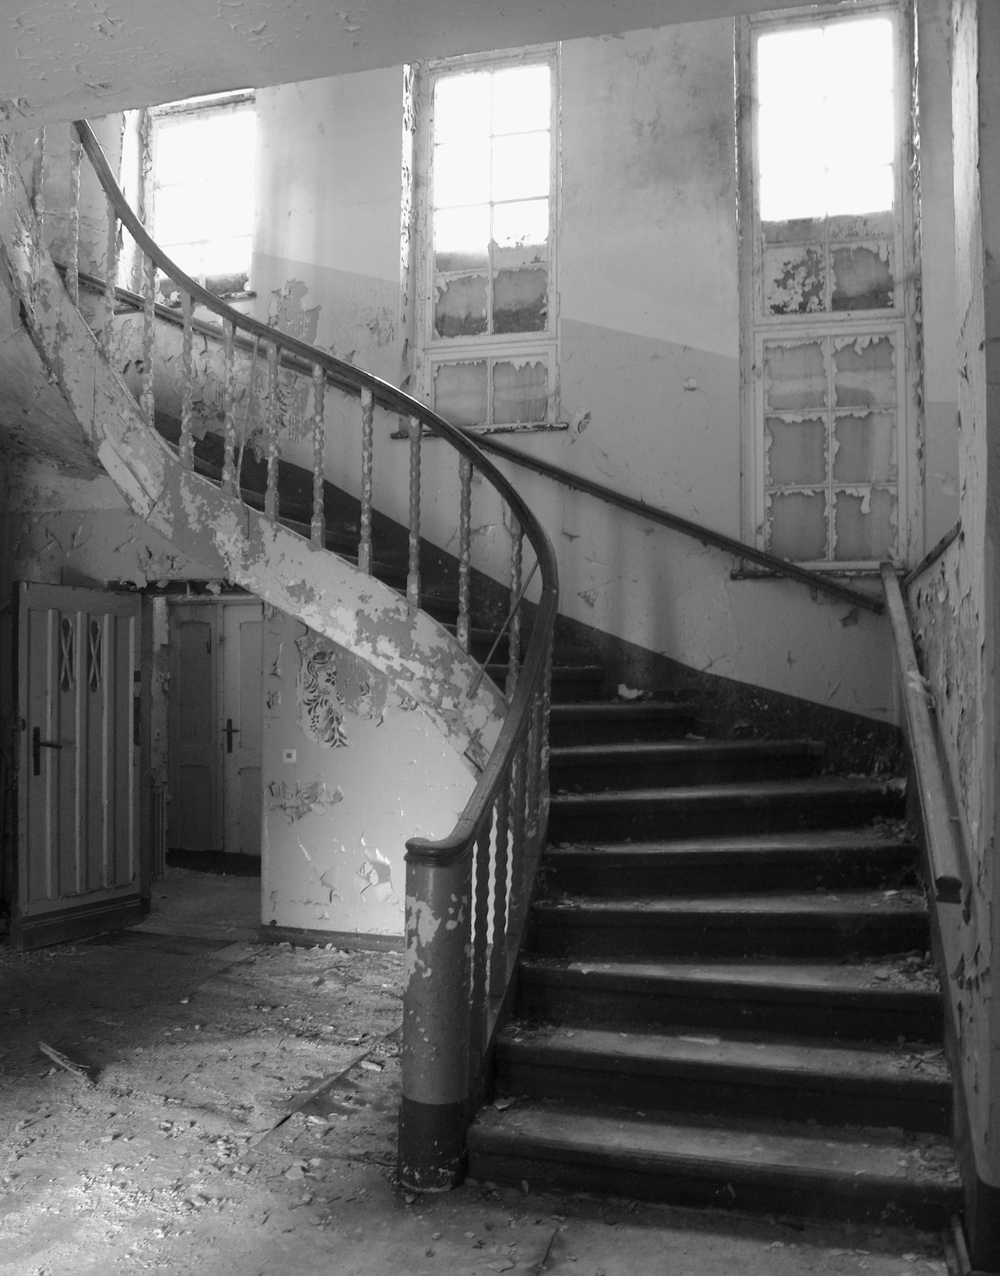 Curved staircase inside the abandoned Elisabeth Sanatorium, Berlin.